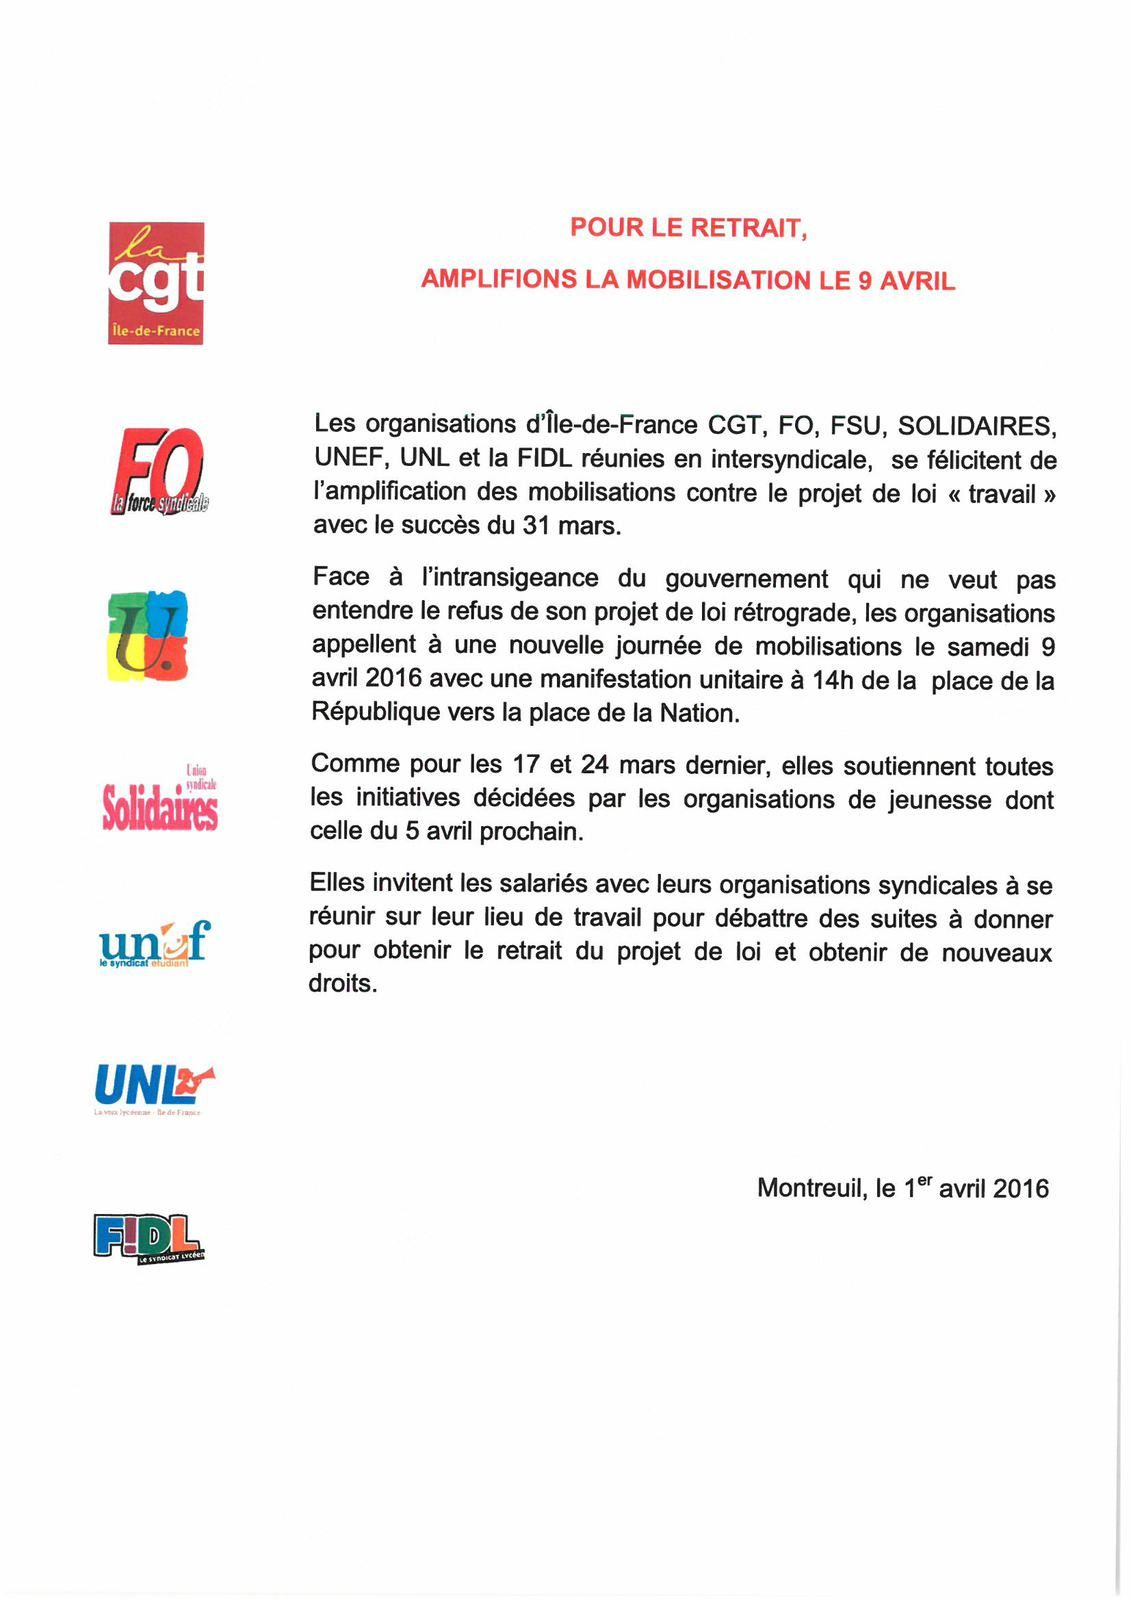 La CGT Korian appelle à la journée d'action du 9 avril.